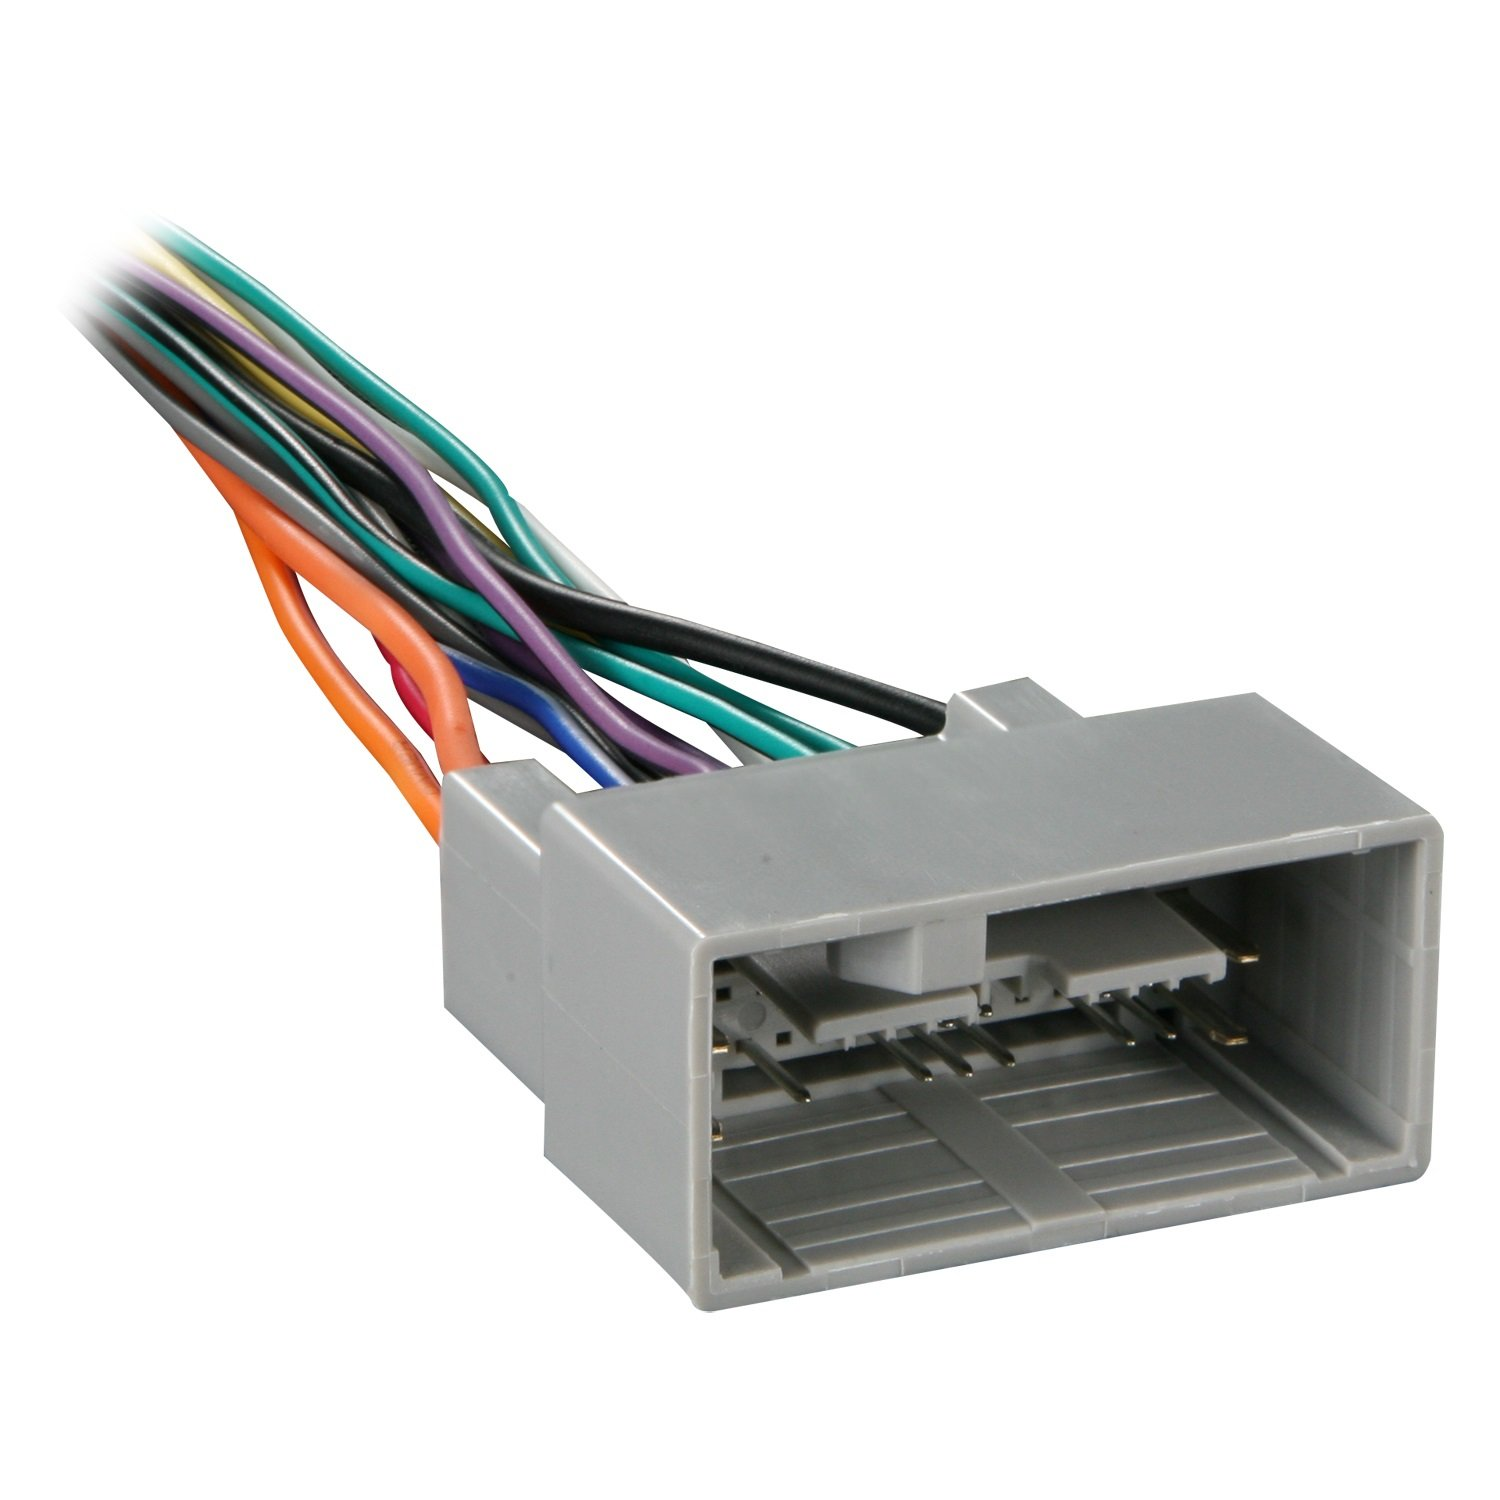 613Kg8IWI7L._SL1500_ amazon com metra 70 1729 radio wiring harness for honda 2008 up honda radio wiring harness at edmiracle.co